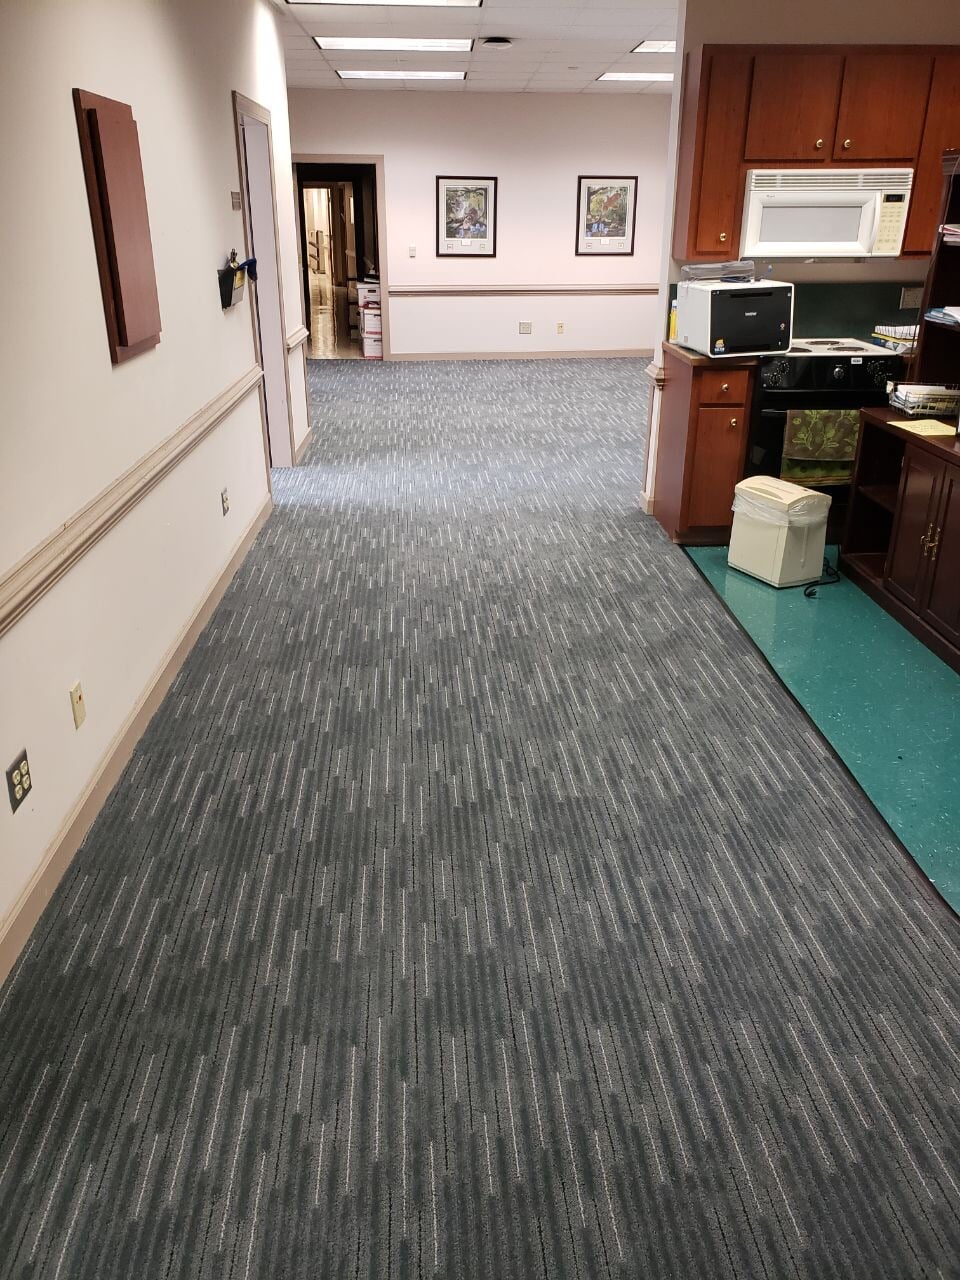 Textured commercial flooring in Gallatin, TN from Absolute Flooring Inc